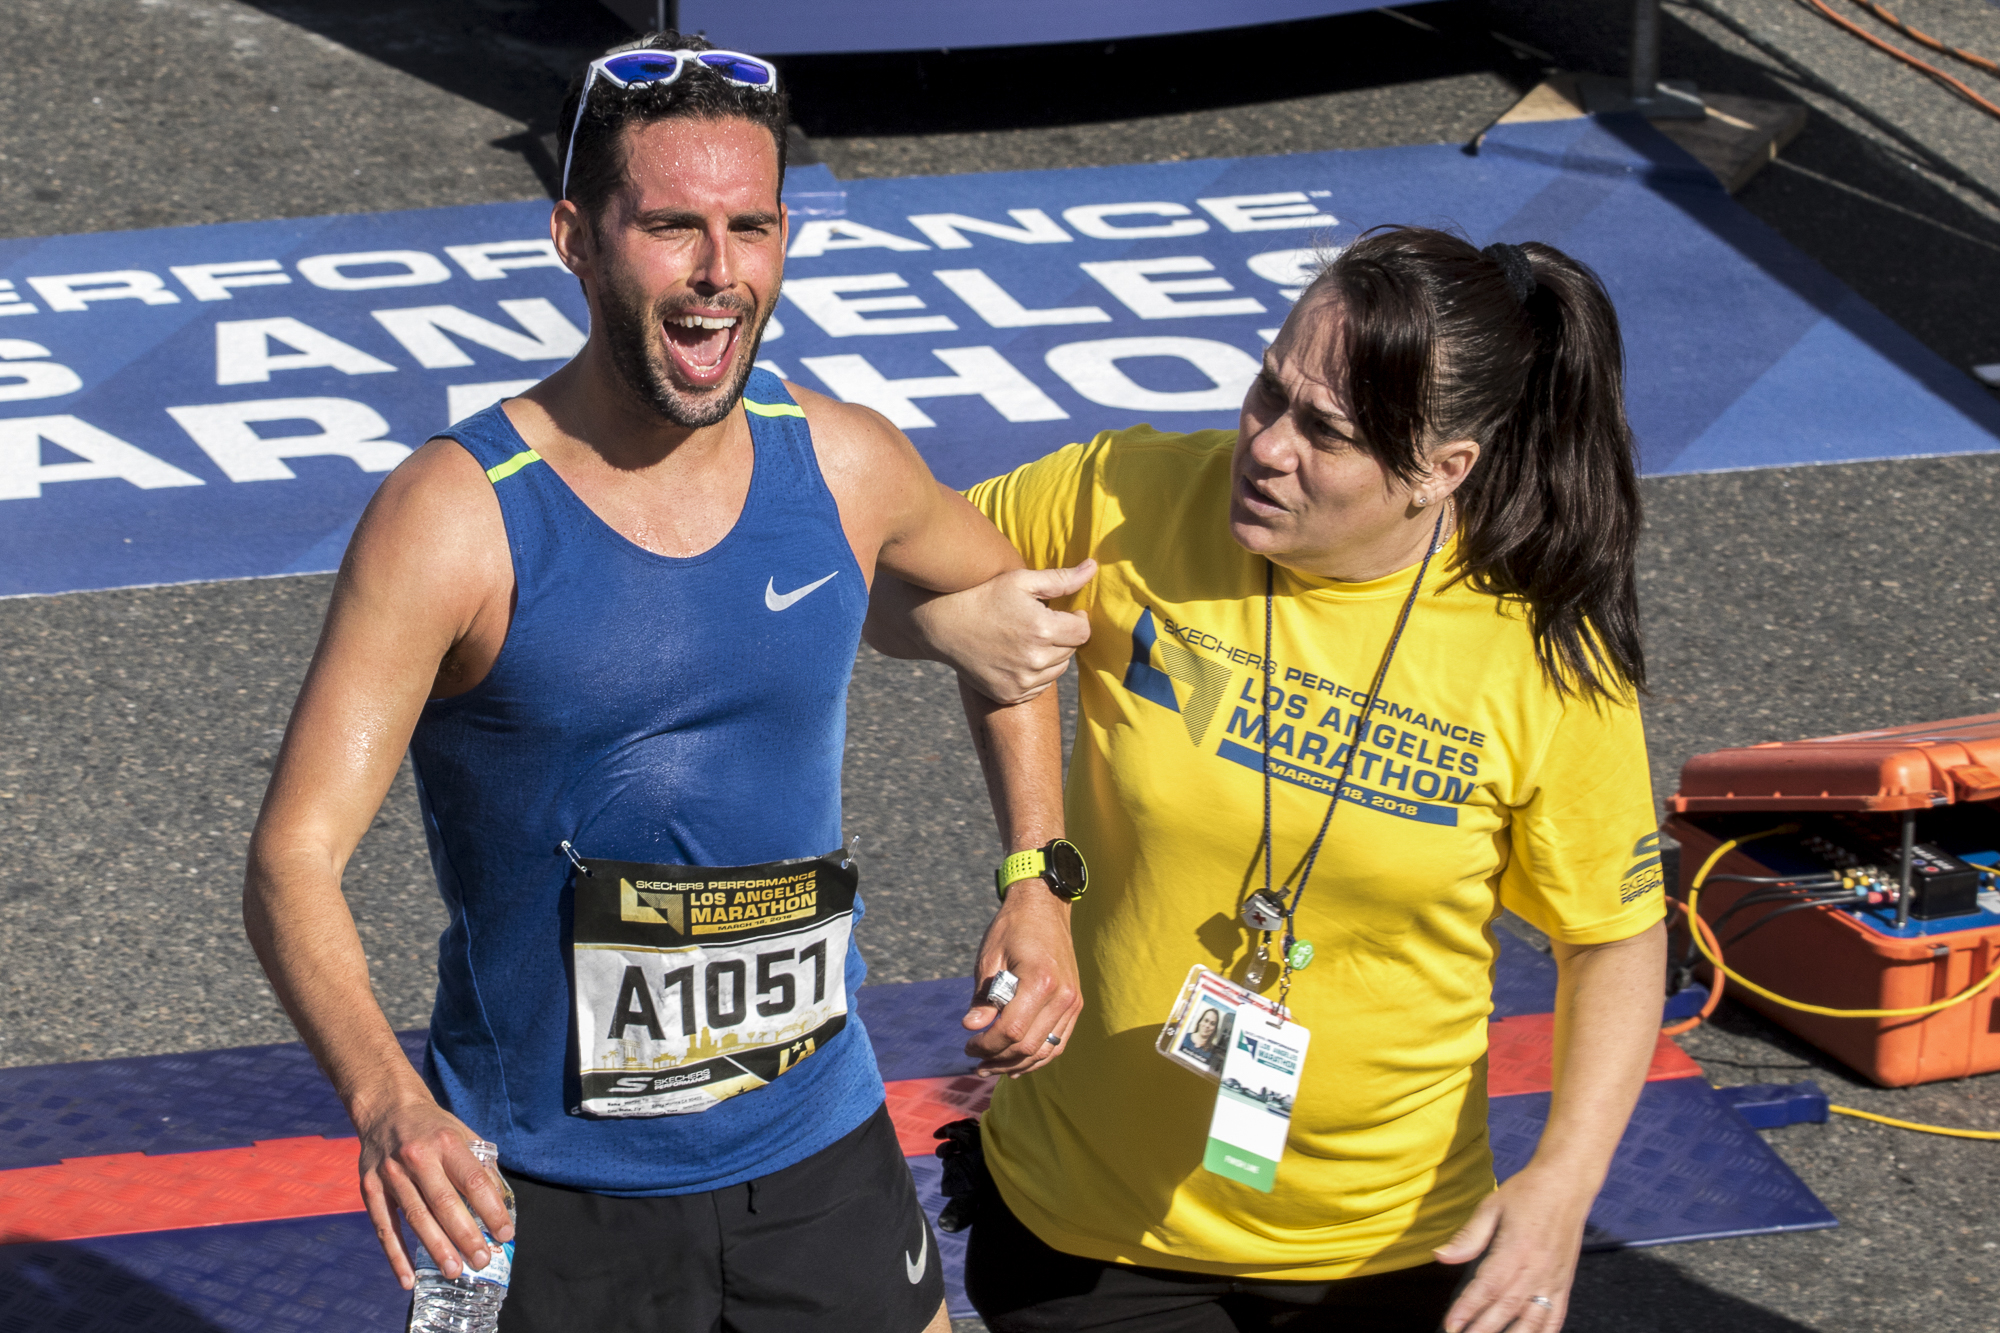 Santa Monica resident Michael Till (left) finishes the Los Angeles Marathon in Santa Monica, California and is grabbed by one of the many volunteer Hotwalkers who were on standby incase any runners needed emergency medical attention. The 2018 Los Angeles Marathon took place on March 18, 2018. (Zane Meyer-Thornton/Corsair Photo)